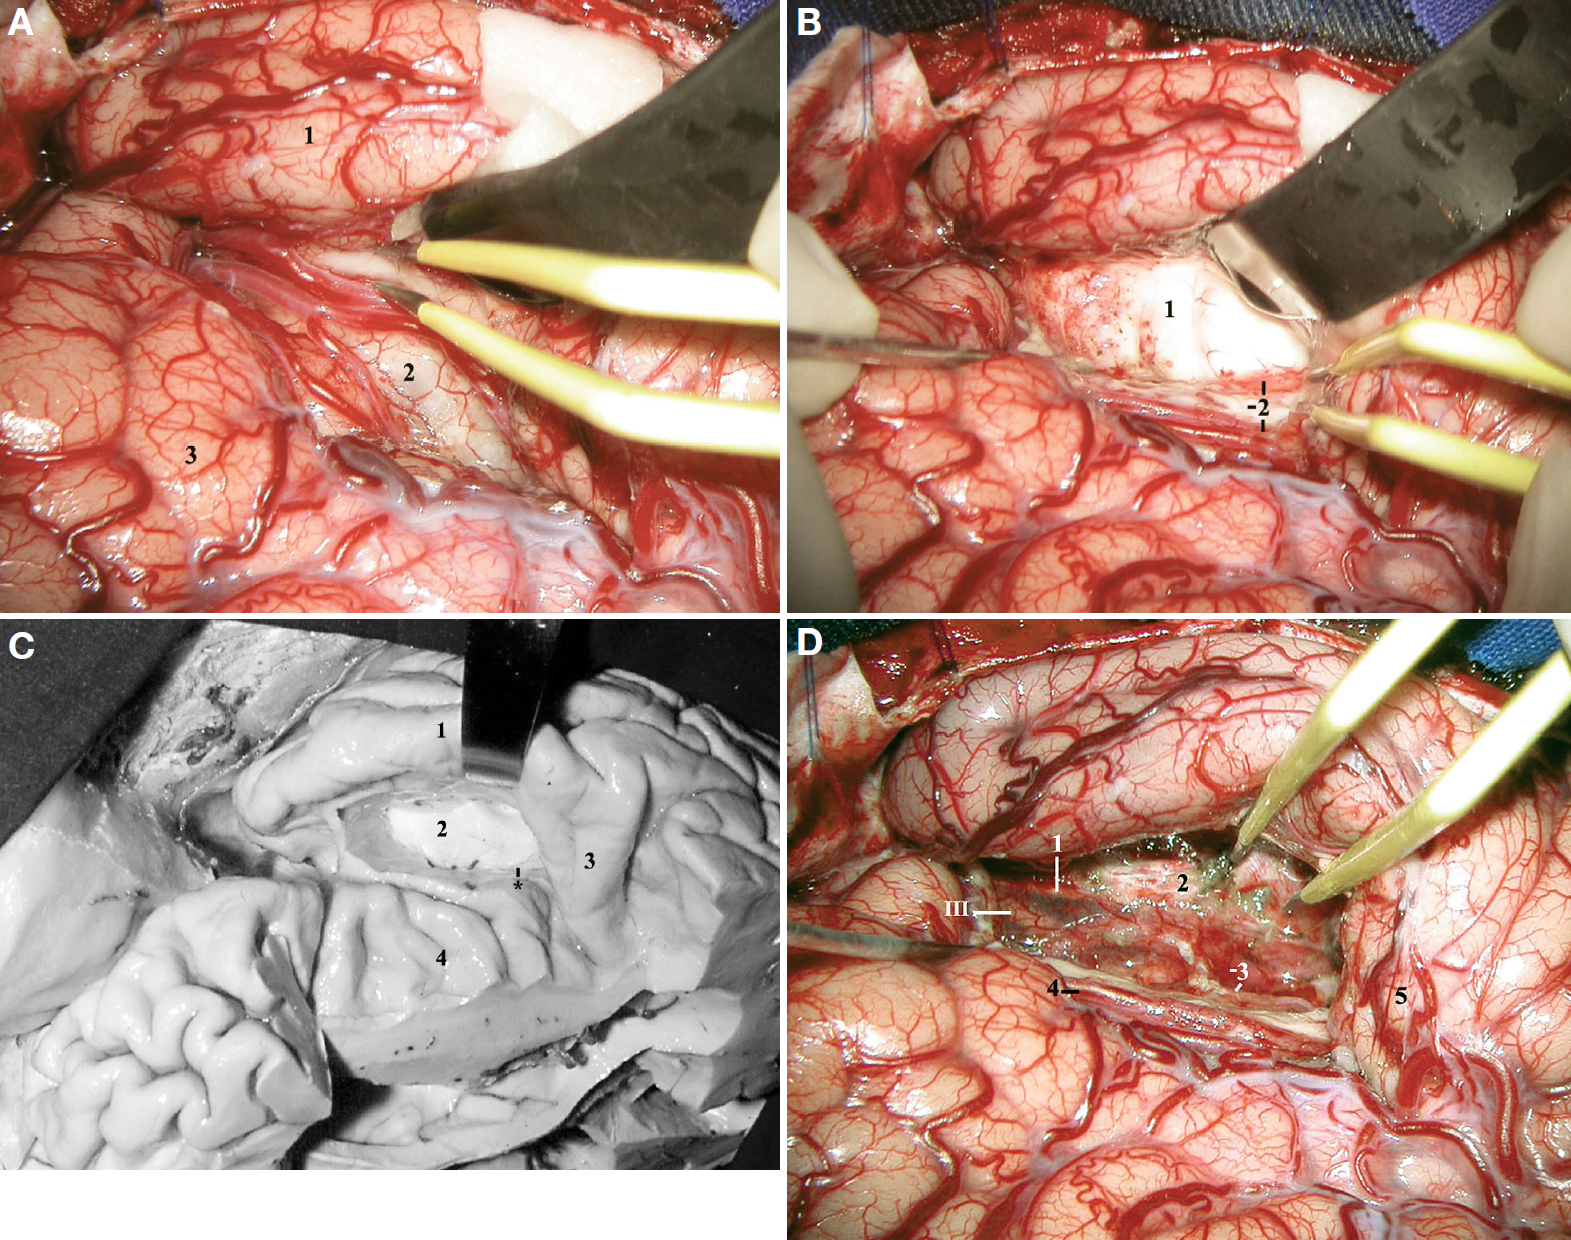 Figure 23. A, intraoperative photograph after an extended right pterional transsylvian approach, depicting the inferior limiting sulcus of the insula (between the tips of the bipolar forceps). 1, temporal lobe; 2, insula; 3, frontal lobe. B, intraoperative photograph after entering the temporal horn. 1, head of the hippocampus; 2, choroid plexus, temporal stem, and the M2 segment of the MCA. The Heschl's gyrus has been retracted posteriorly by the bipolar forceps. C, anatomic dissection mimicking the surgical approach shown in B. 1, superior temporal gyrus; 2, head of the hippocampus; 3, Heschl's gyrus; 4, insula. Asterisk, choroid plexus of the temporal horn. D, intraoperative photograph after a right pterional transsylvian selective amygdalohippocampectomy. 1, free edge of the tentorium; 2, dura mater of the floor of the middle fossa; 3, P2A segment of the posterior cerebral artery, and the choroid plexus of the temporal horn; 4, M2 segment of the MCA; 5, Heschl's gyrus; III, oculomotor nerve. (Images courtesy of AL Rhoton, Jr.)